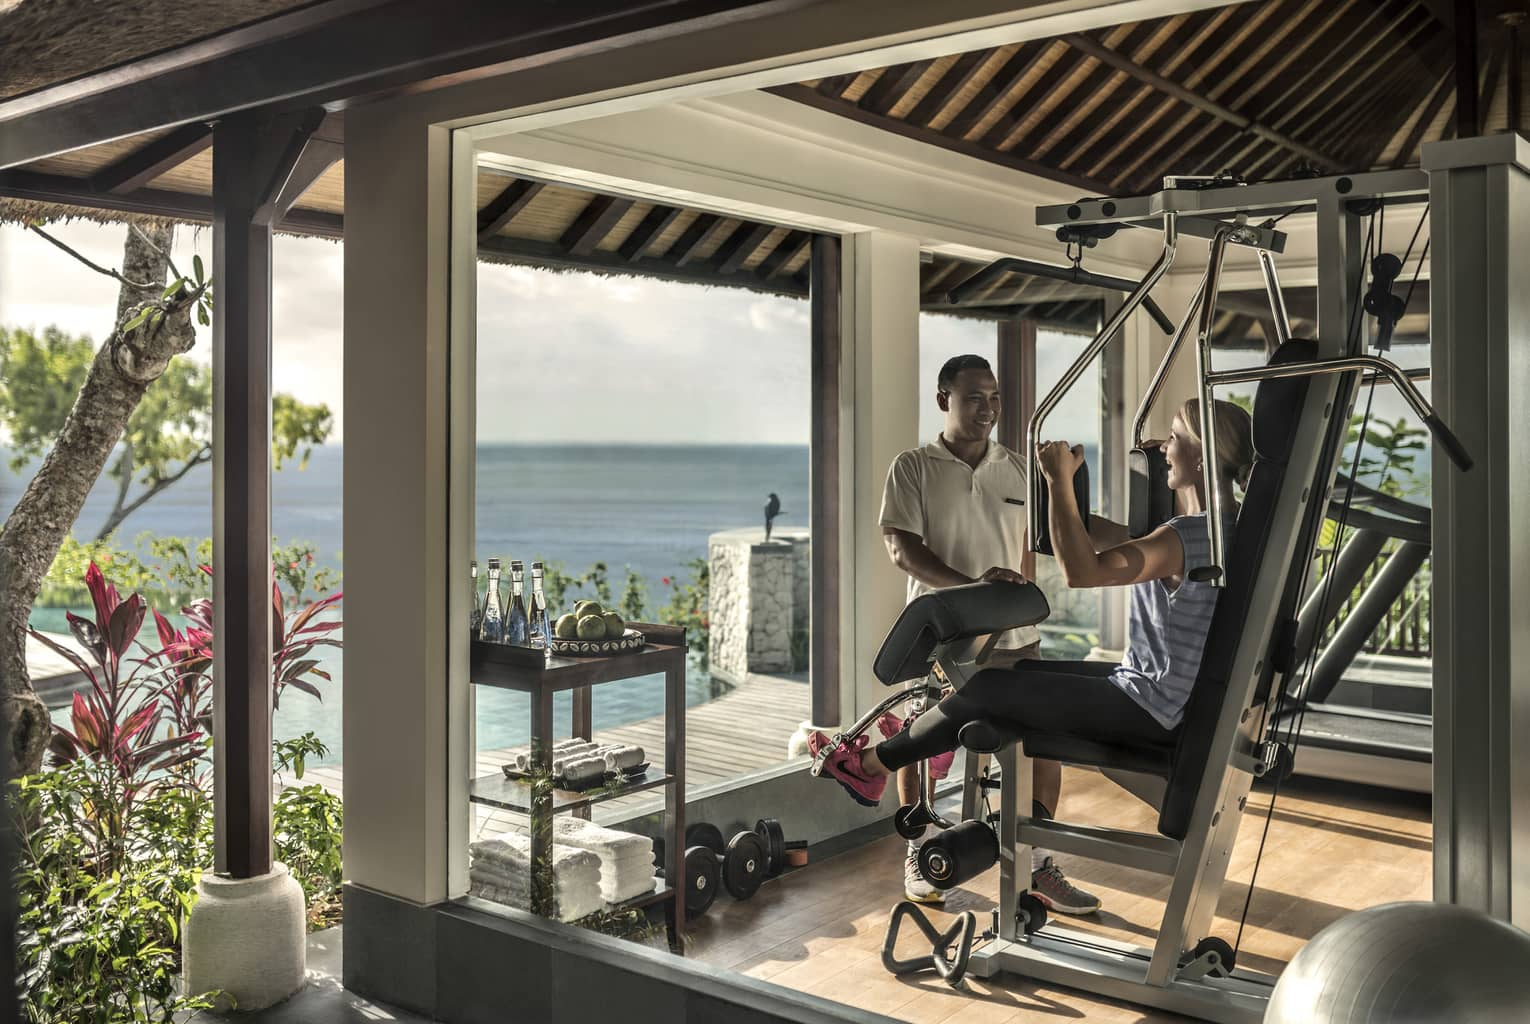 Imperial Villa private gym, trainer assists woman on weights machine by window with ocean view